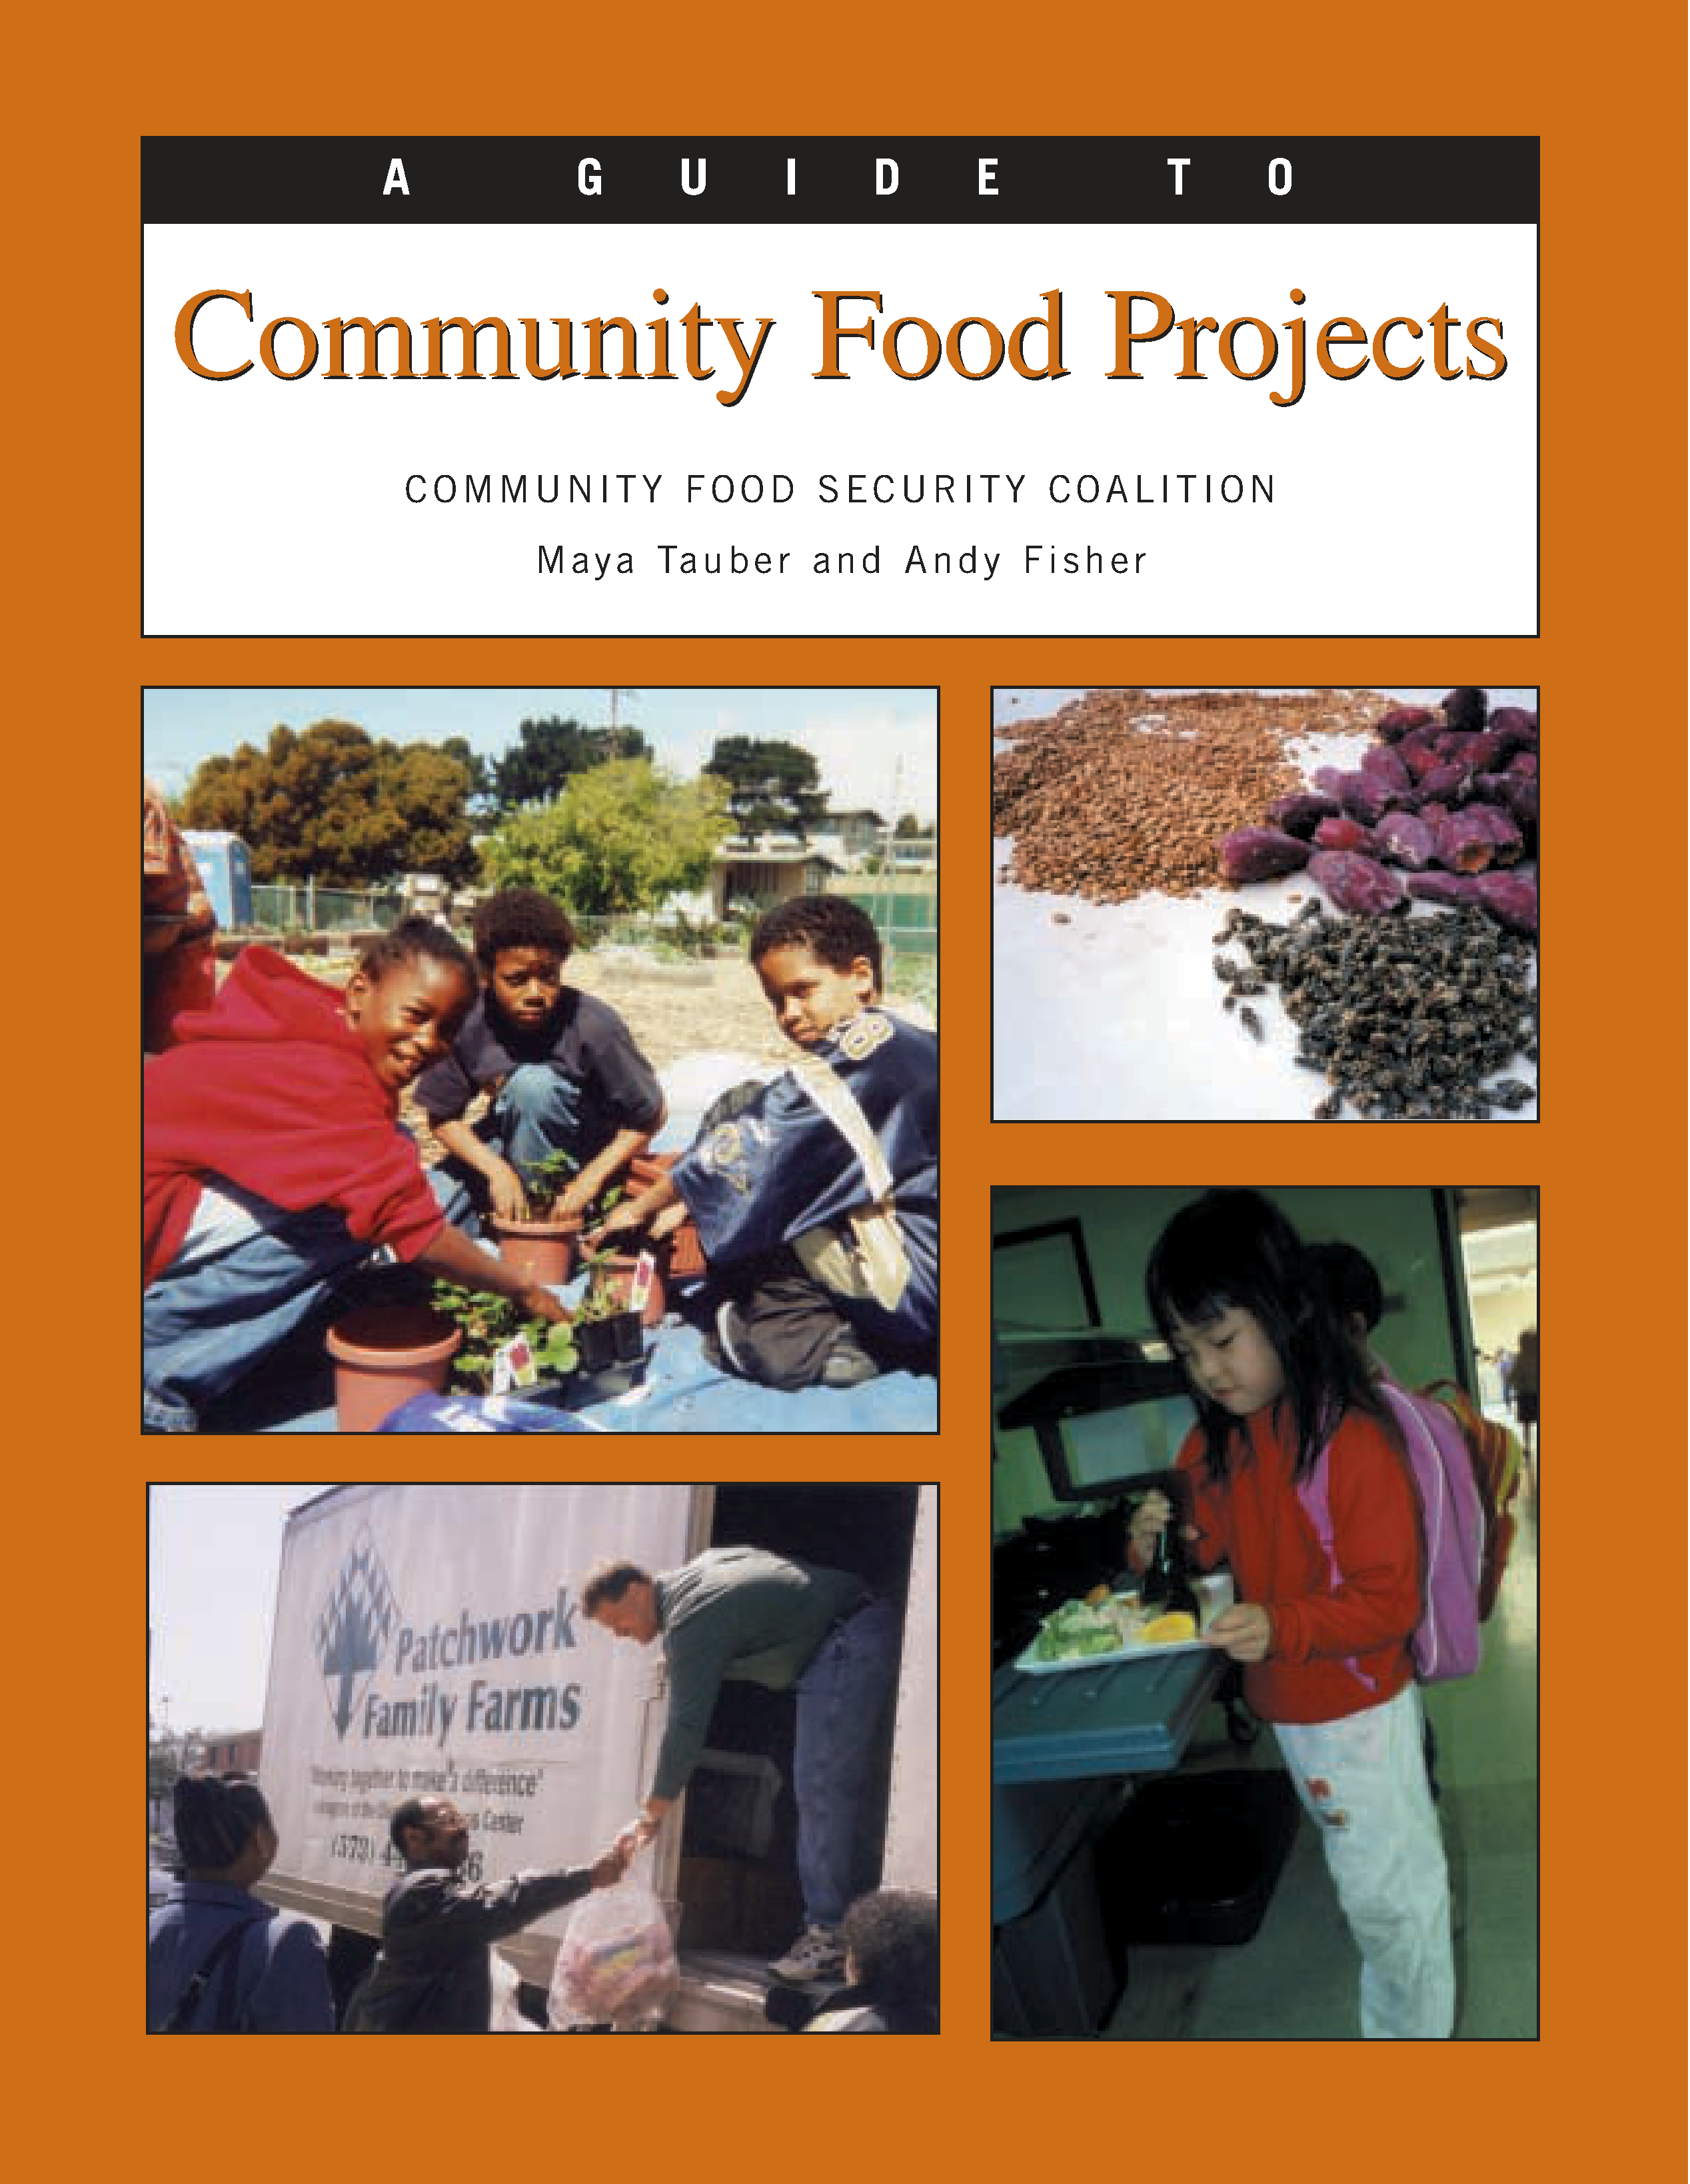 A Guide to Community Food Projects